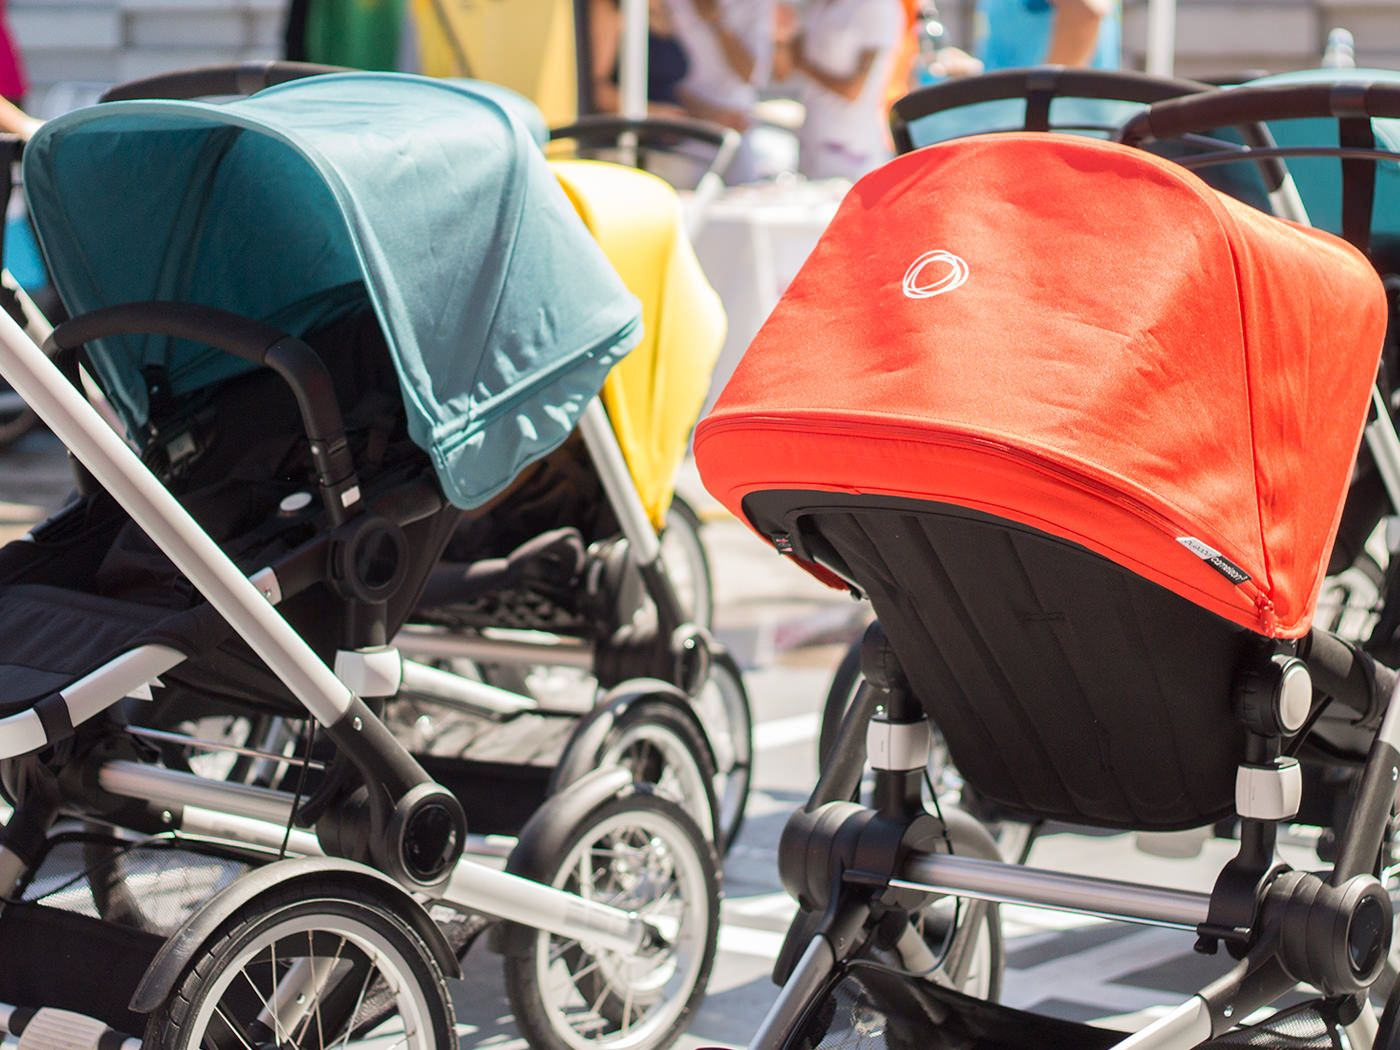 Babyton, carrera familiar con carritos en Alcobendas. Bugaboo Runner